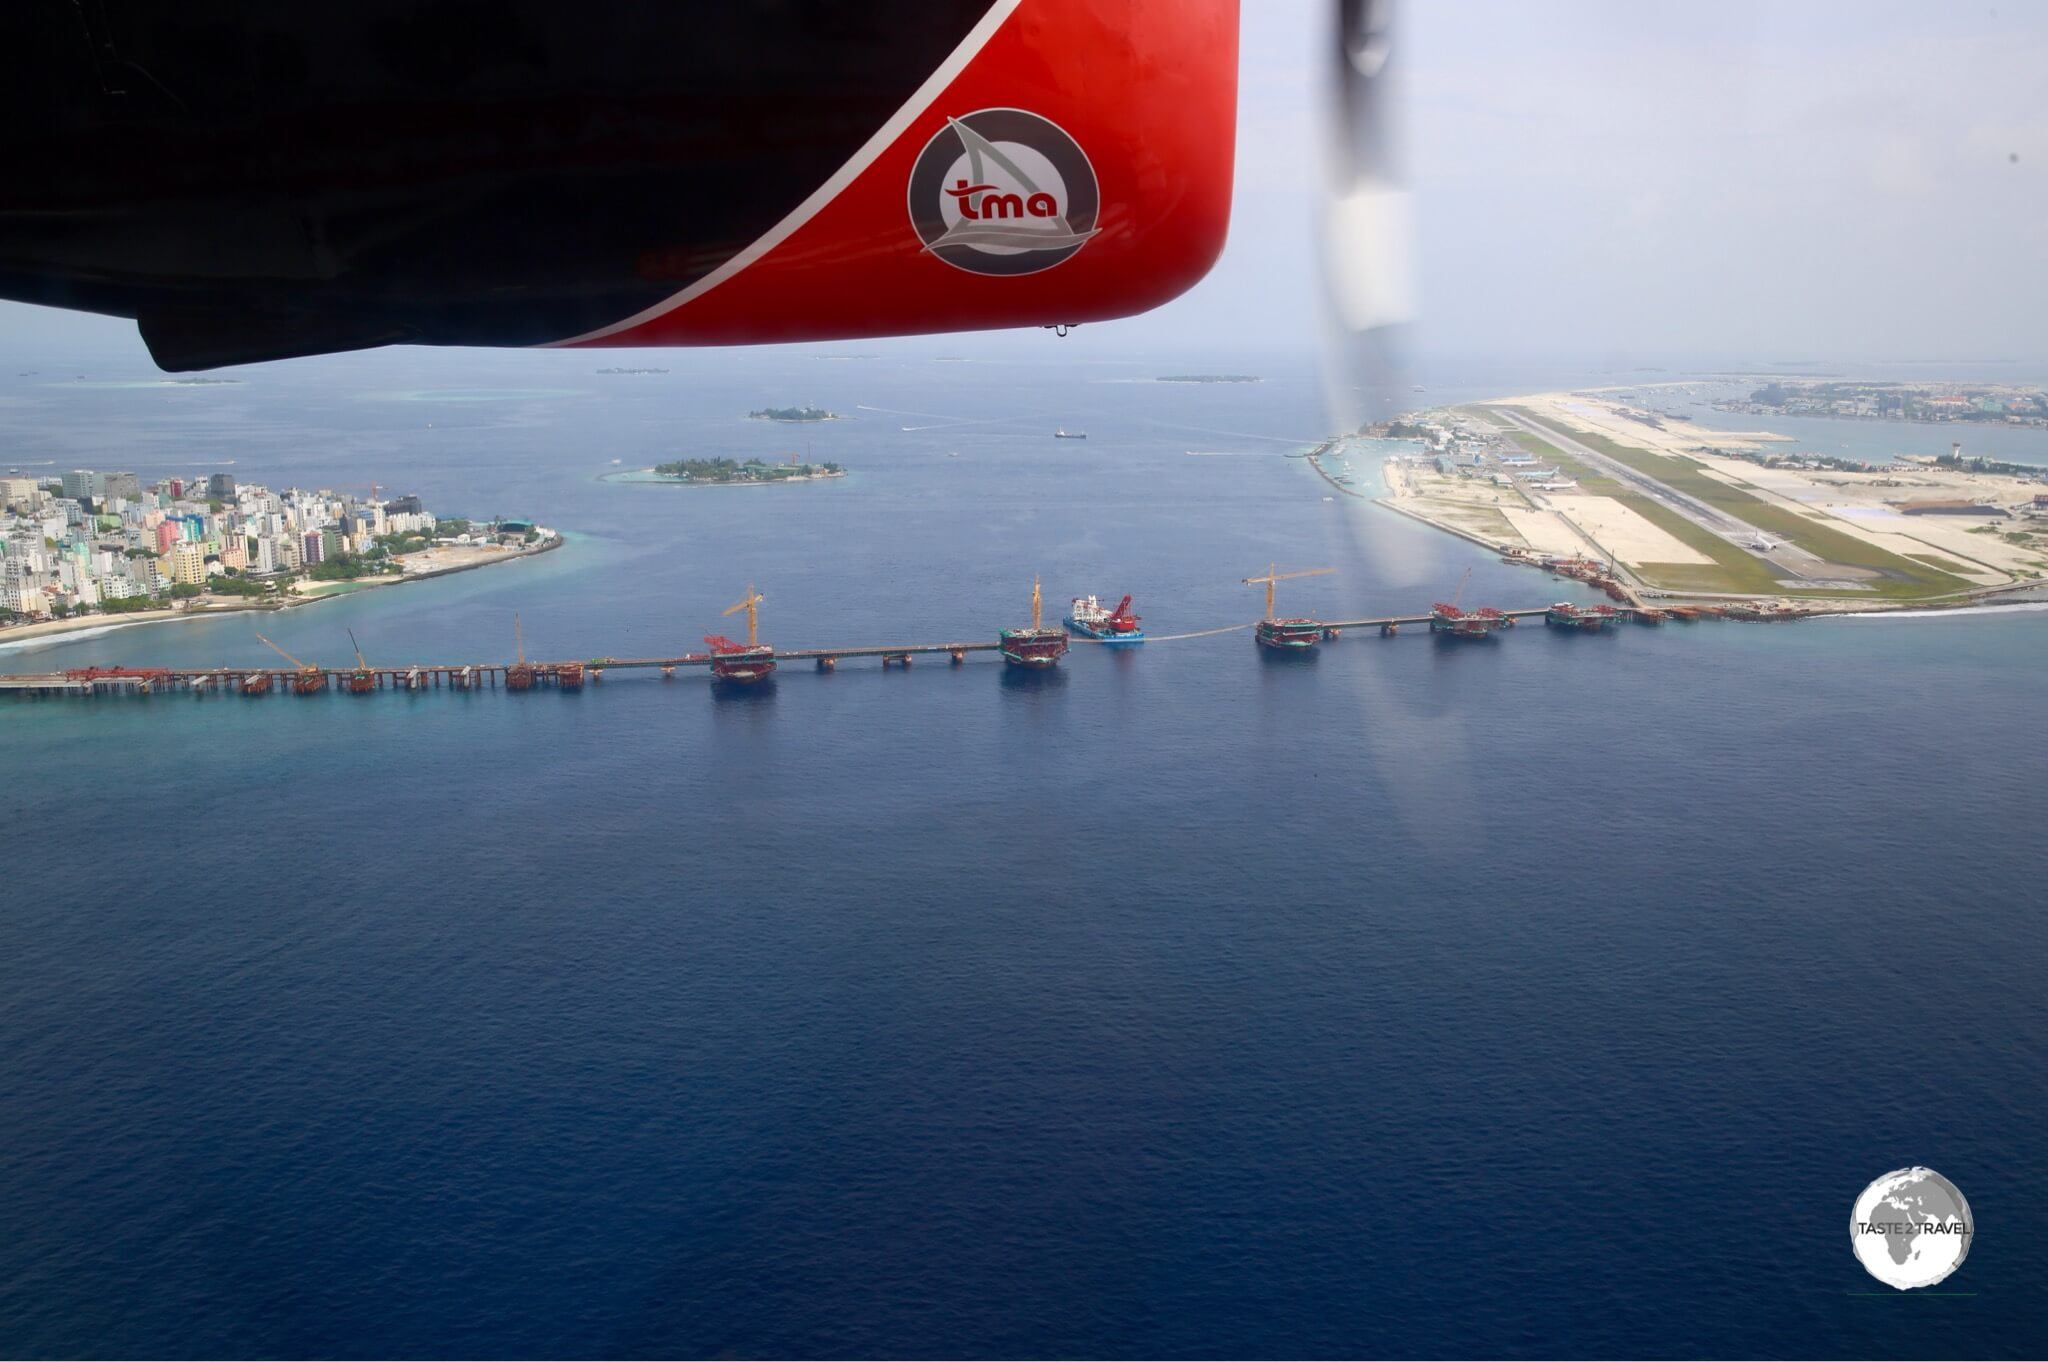 A view of the new Chinese constructed Airport-Malé bridge.